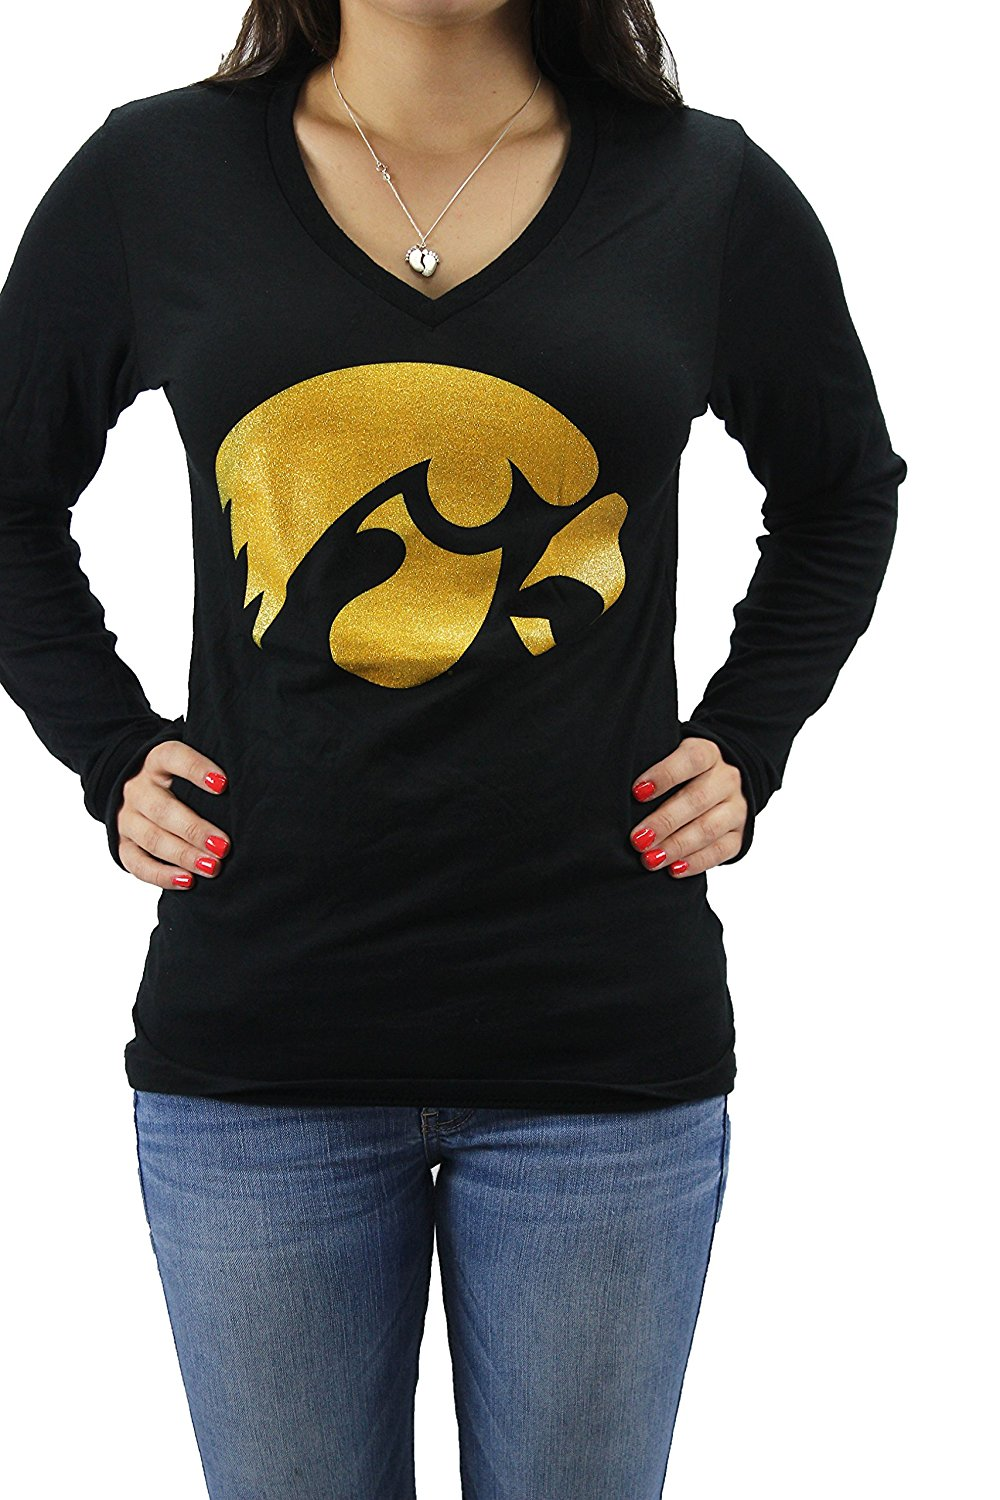 Pressbox Women' s NCAA Iowa Hawkeyes V-Neck Long Sleeve T-Shirt Large Logo Small, Officially Licensed Collegiate Product... by